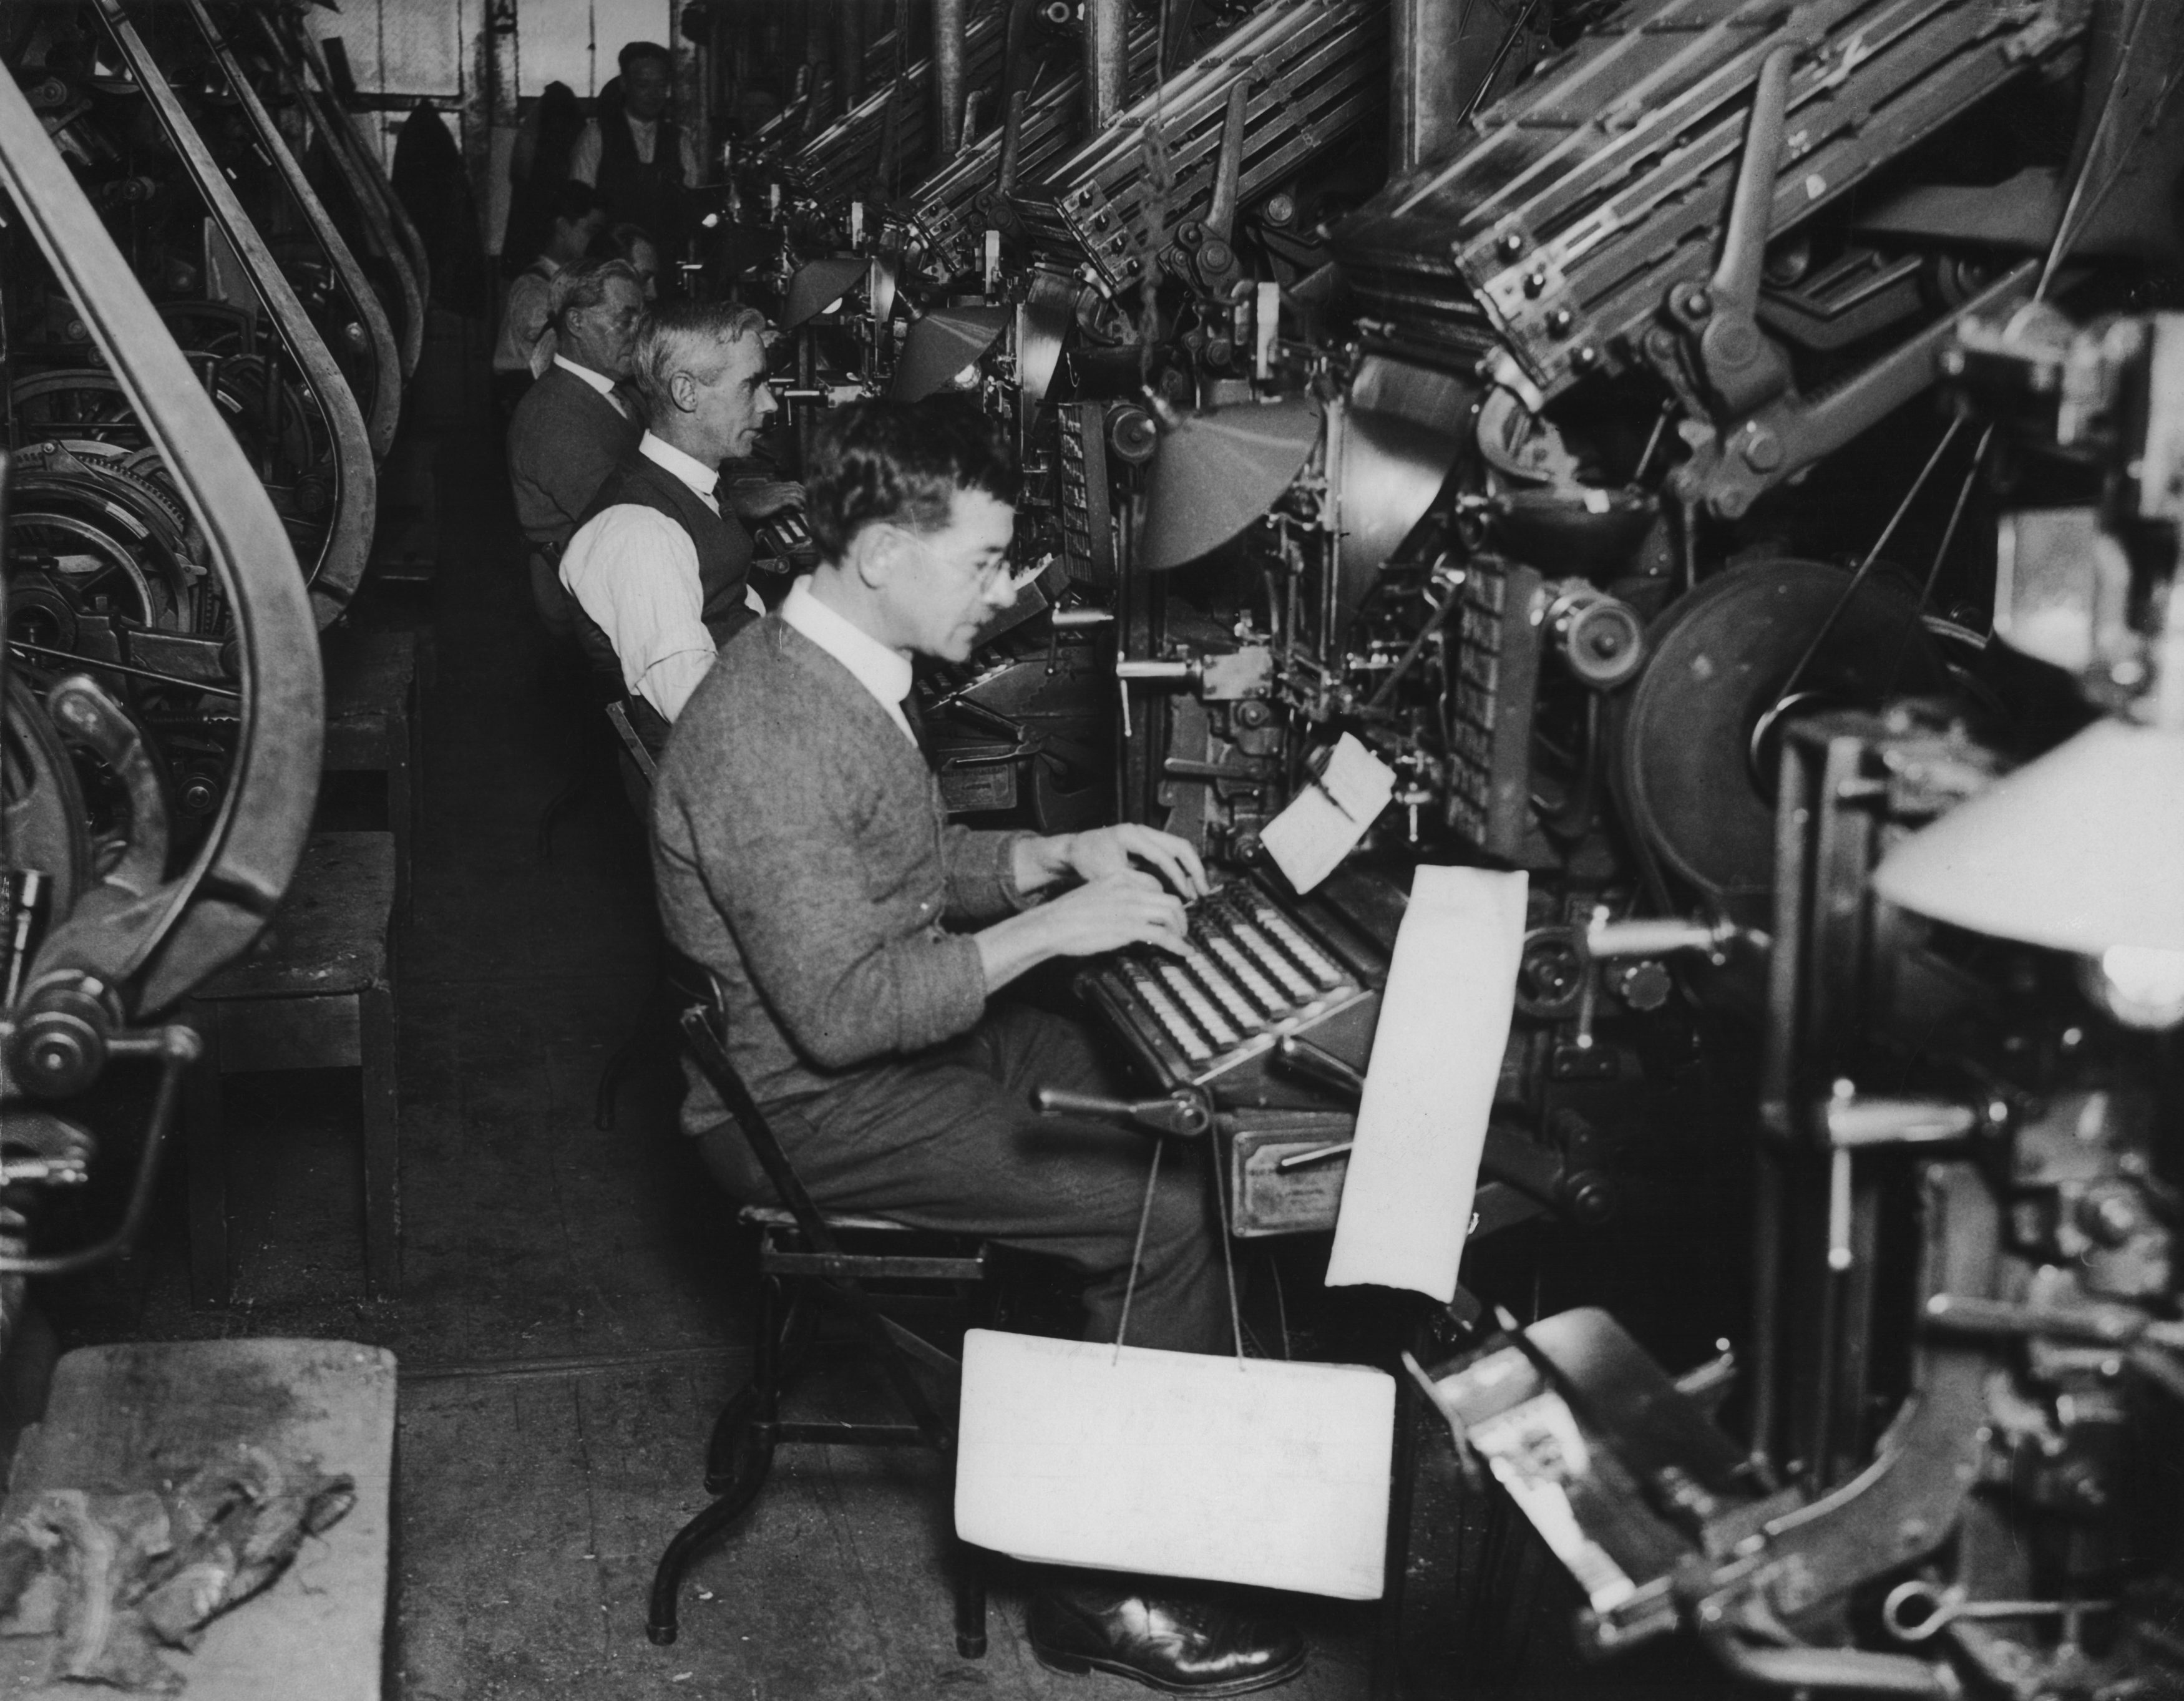 The linotype department of a large London newspaper, circa 1930.